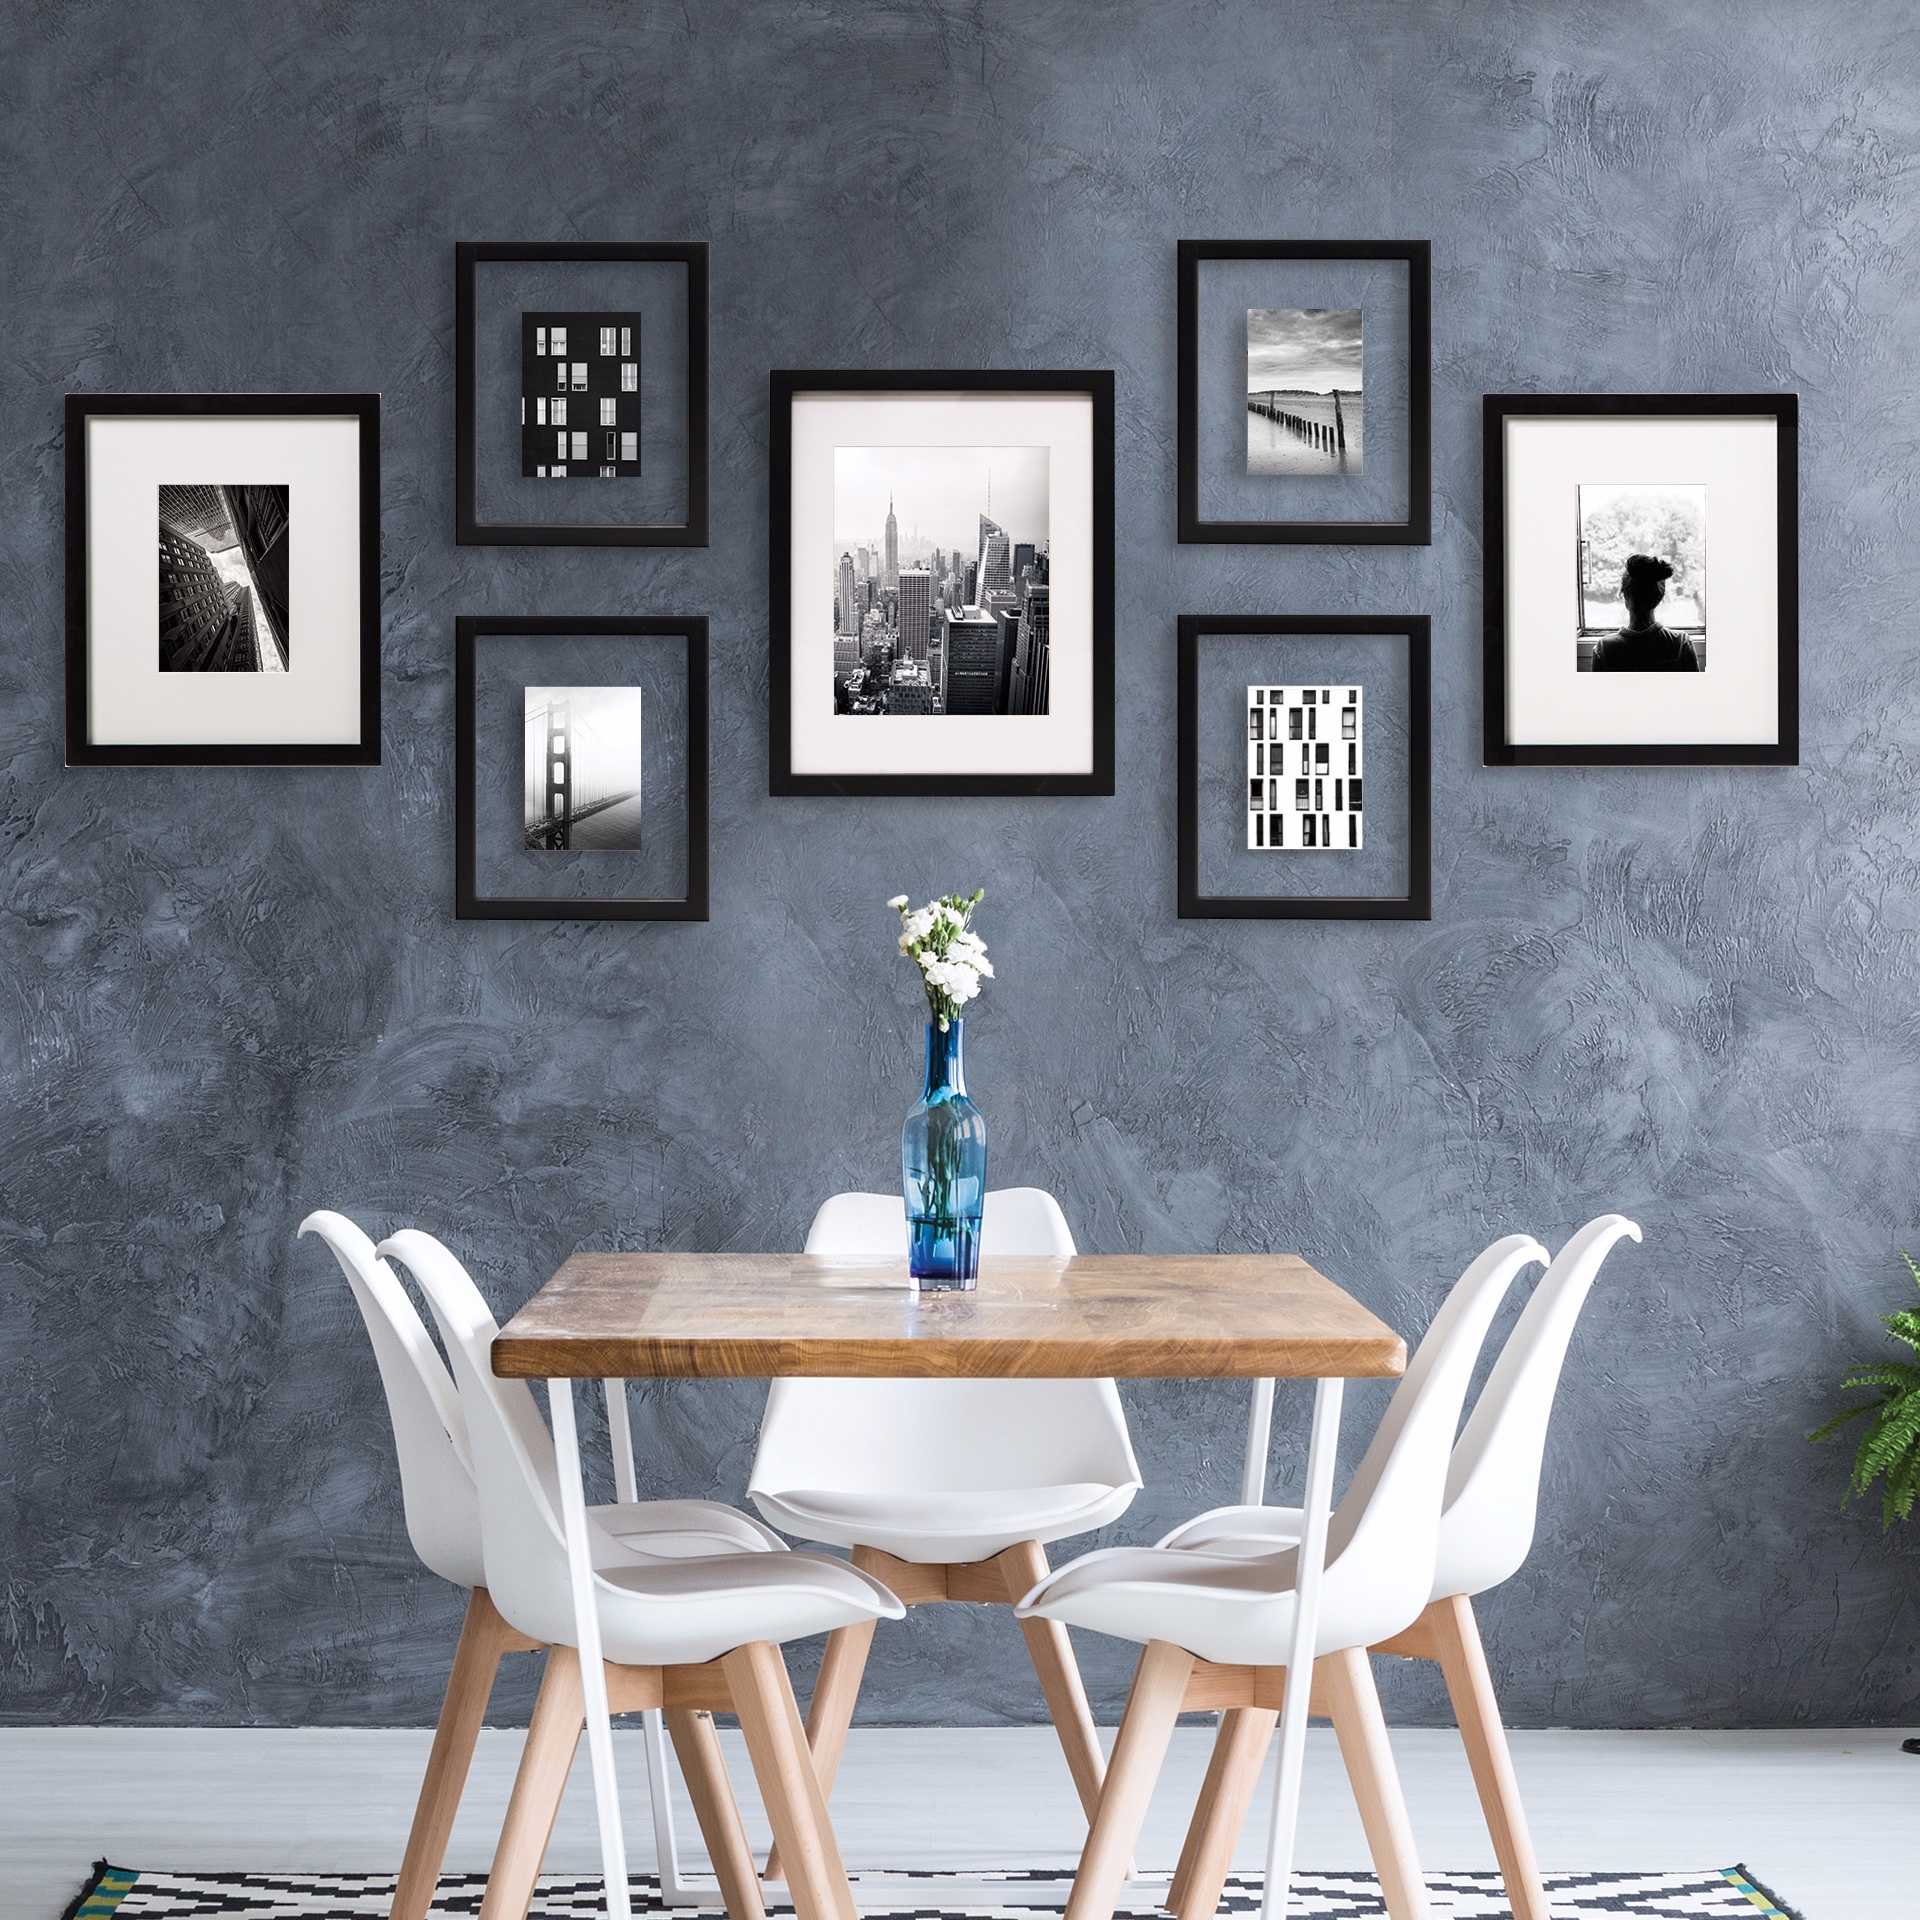 Gallery frames - Wall frames for every size and décor style.